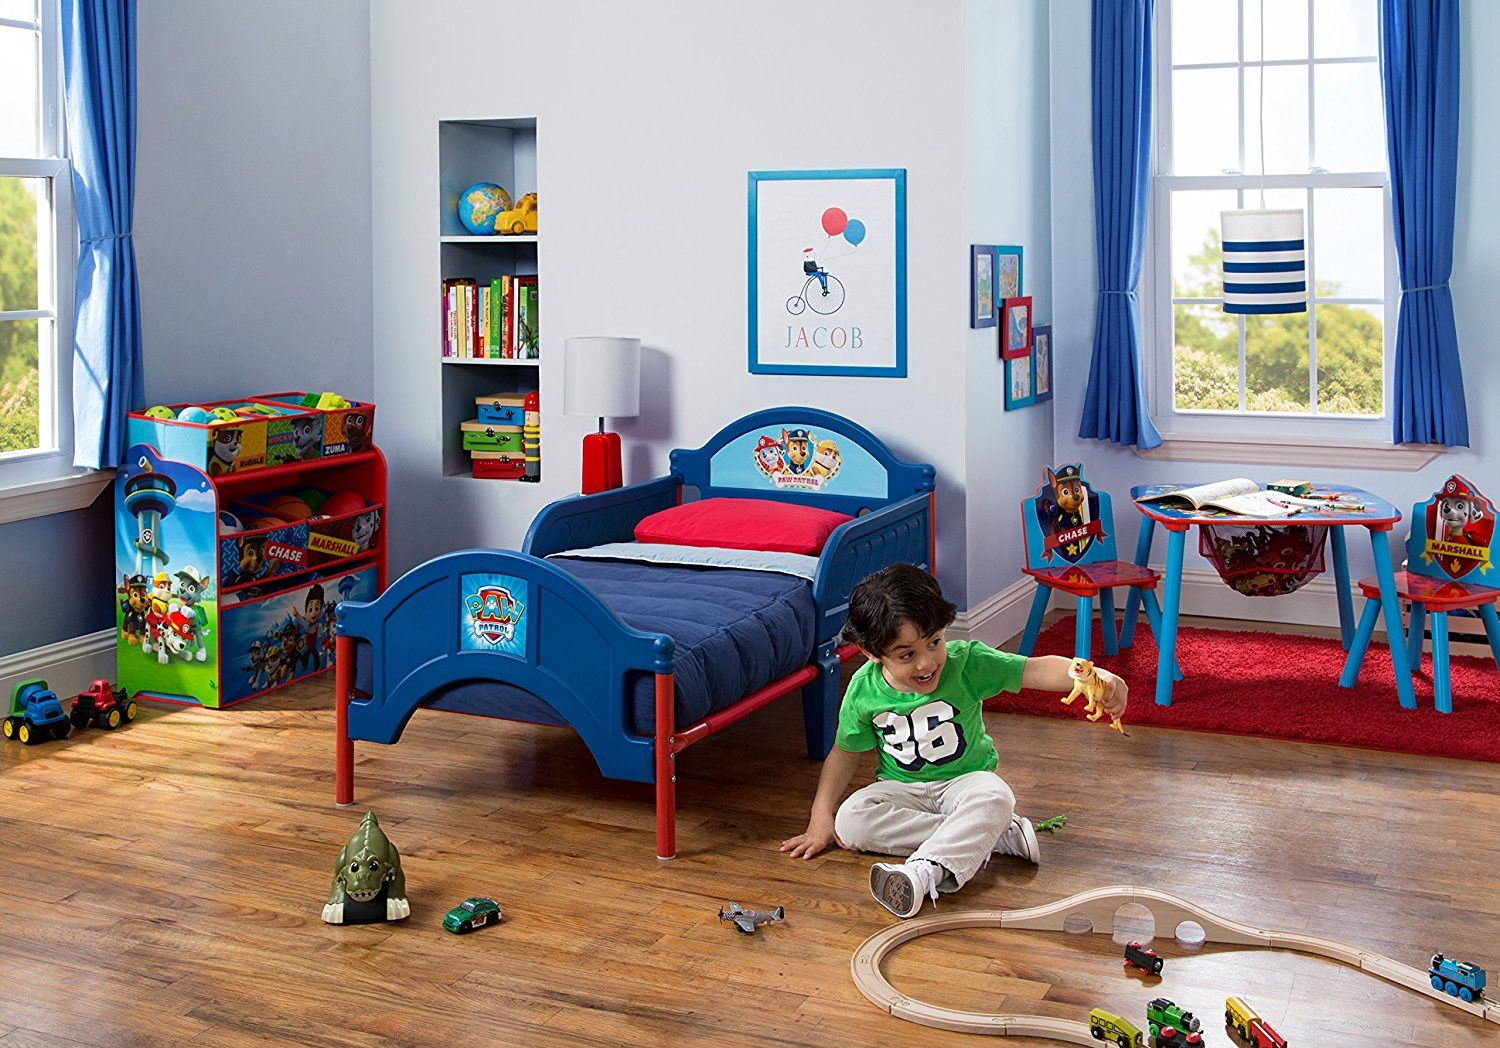 2019 Paw Patrol Toddler Bed Set Organization Ideas For Small Bedrooms Check More At Http Davidhyounglaw Com Toddler Furniture Toddler Bed Toddler Bed Duvet